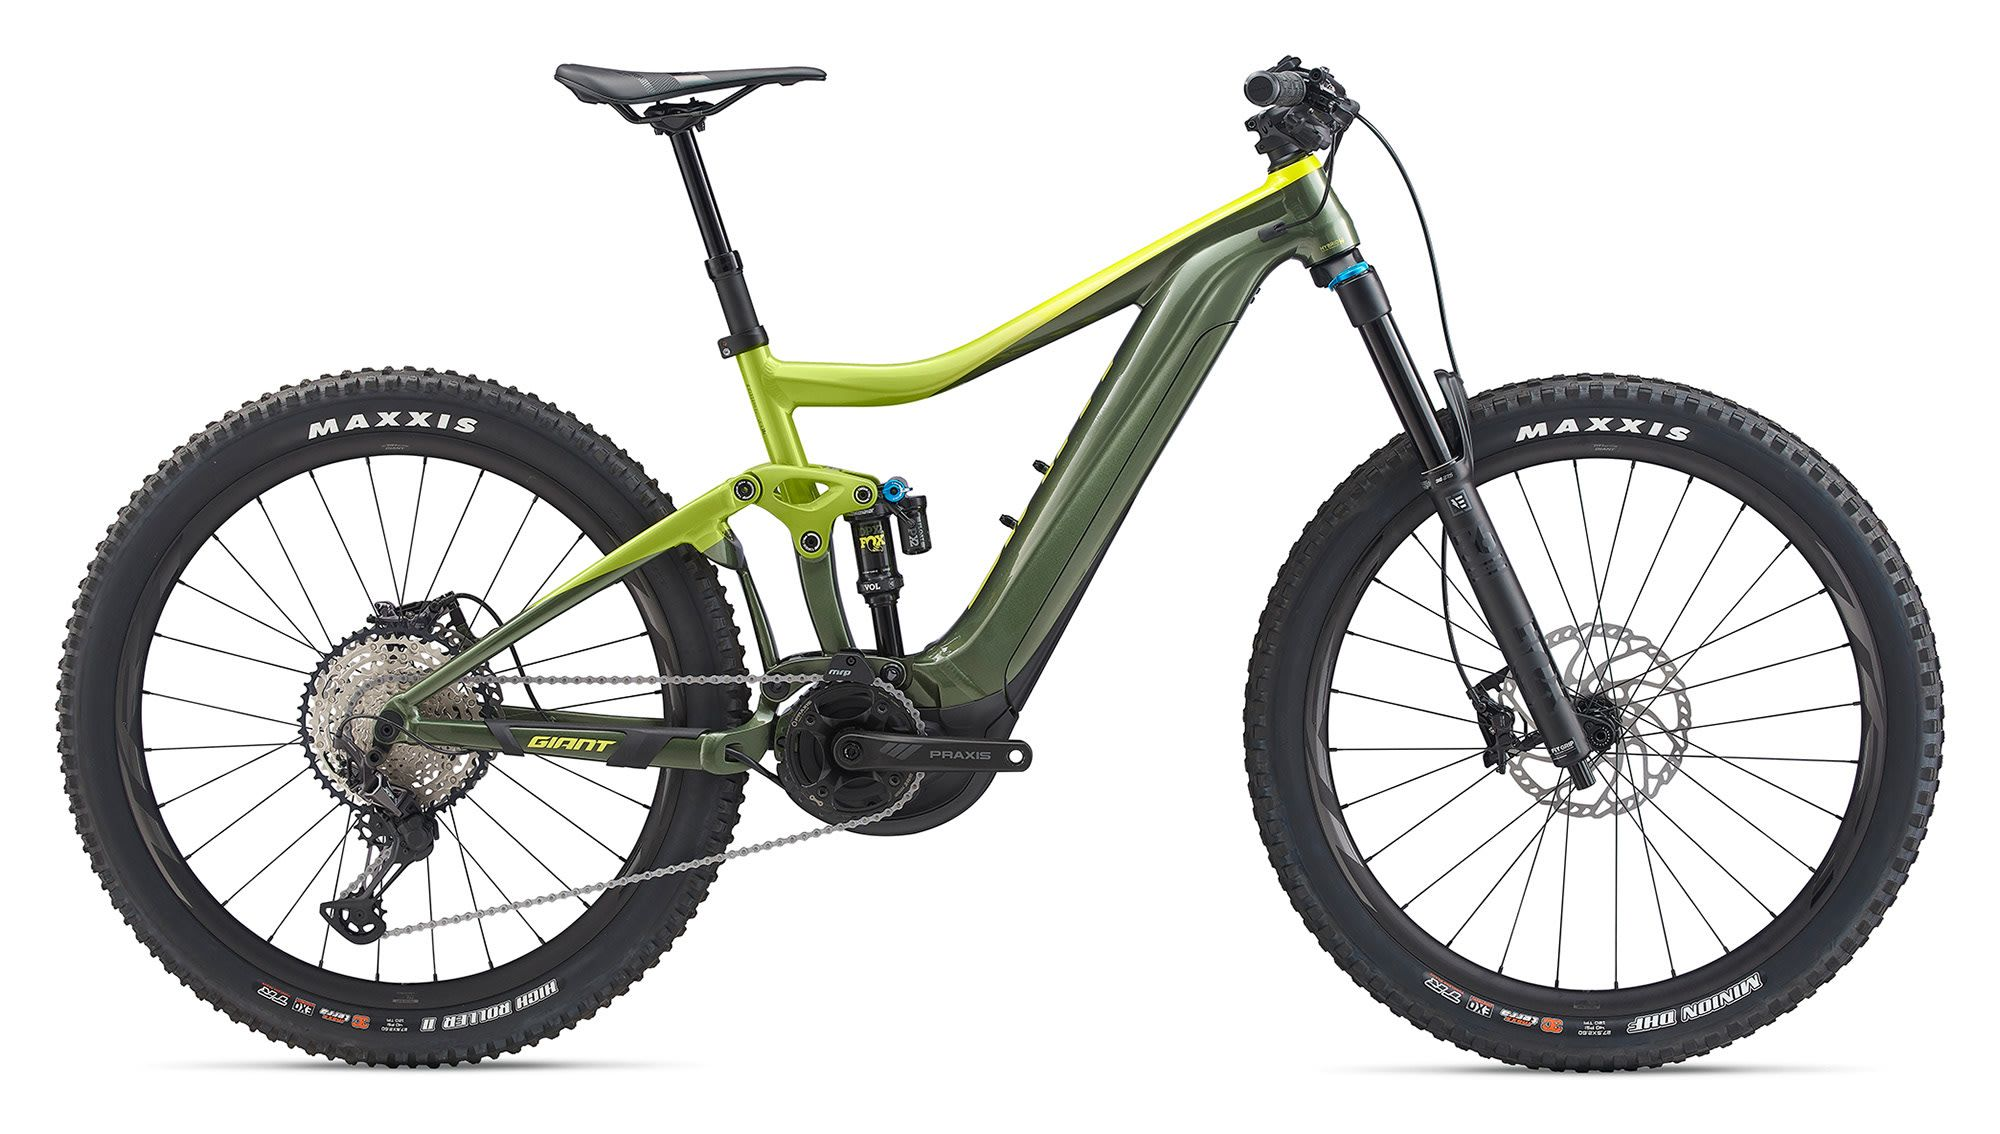 Giant Trance E+ 1 Pro 650b Electric Mountain Bike 2020 | City-cykler